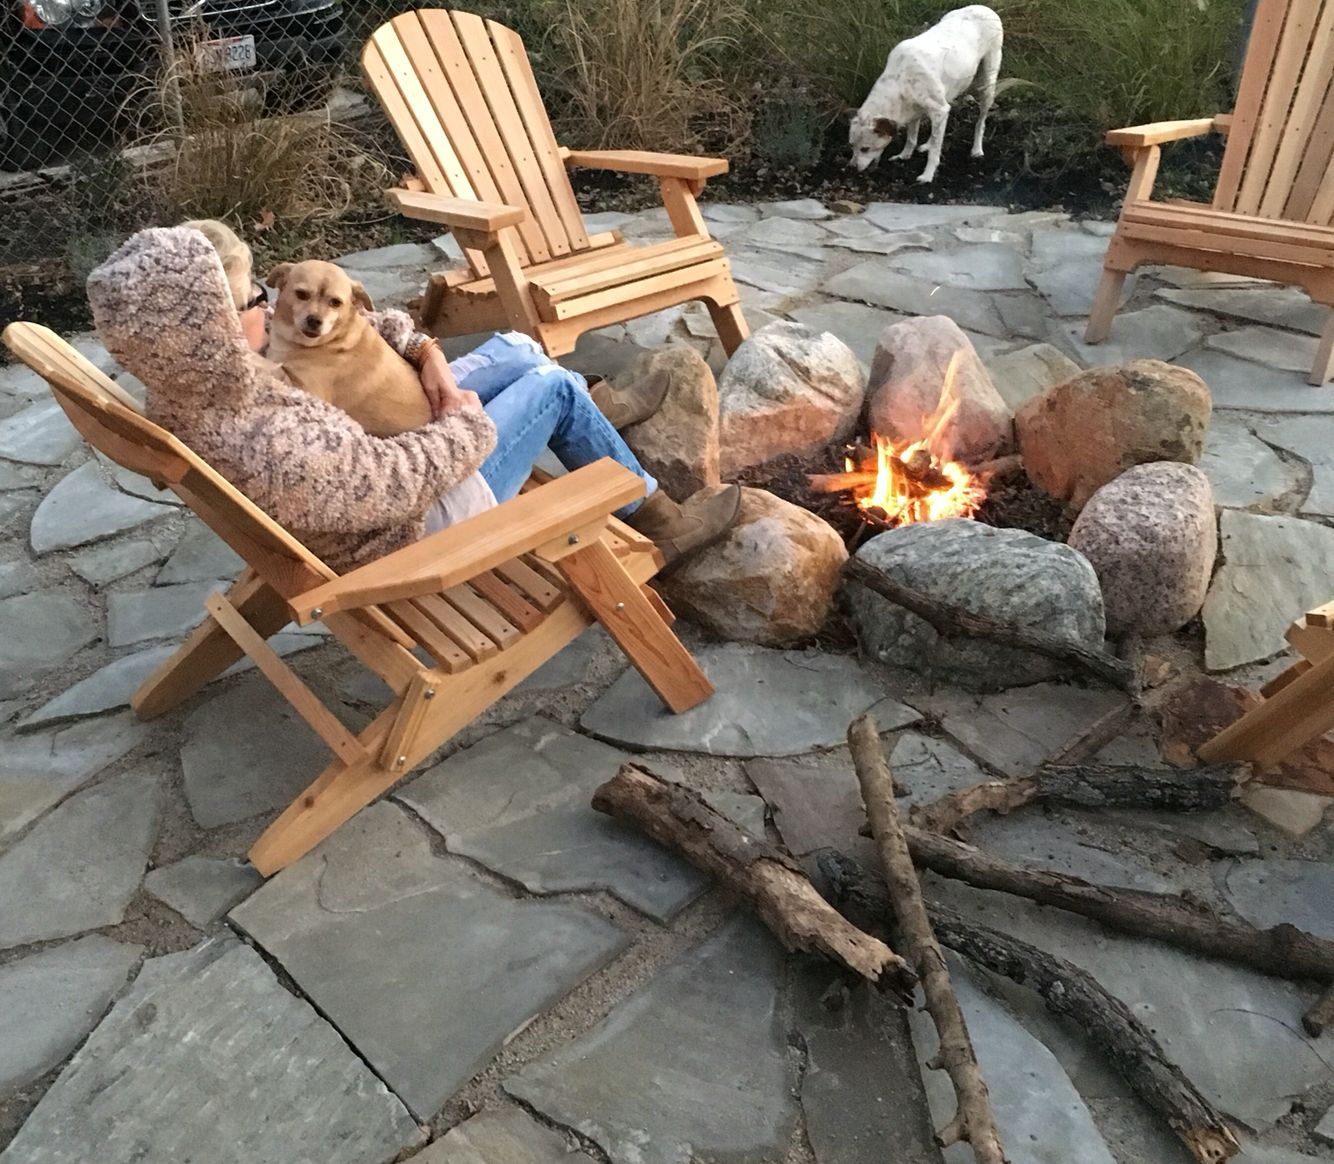 Tennessee Flagstone And Boulder Fire Pit Diy Fire Pit Essentials Fire Pit Outdoor Fire Pit